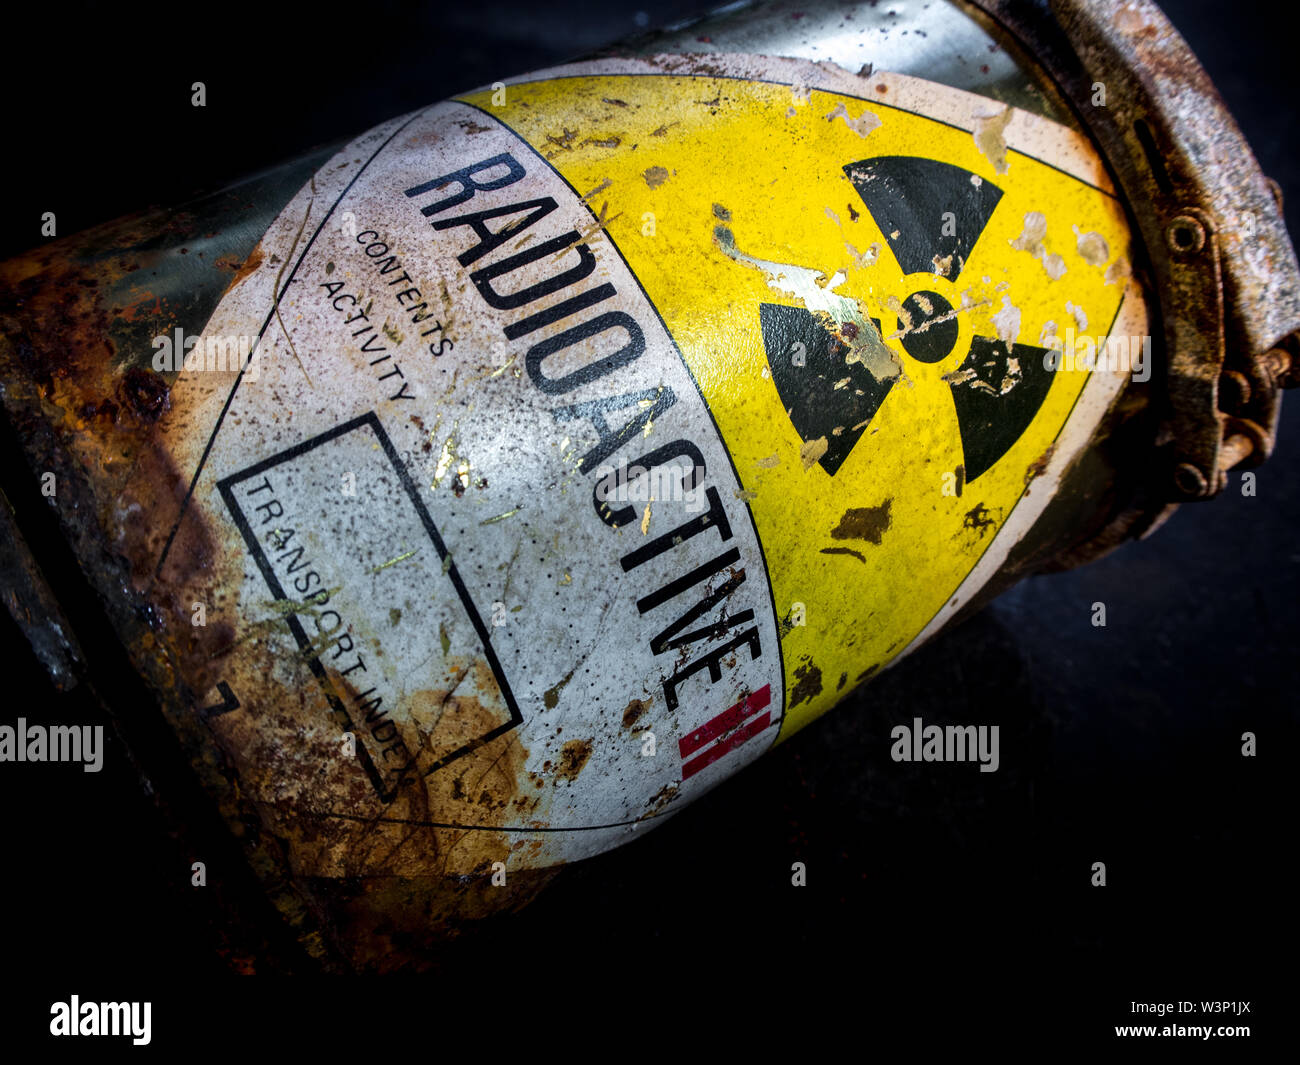 Radiation warning sign on transport index label stick on the rust and decay radioactive material container - Stock Image